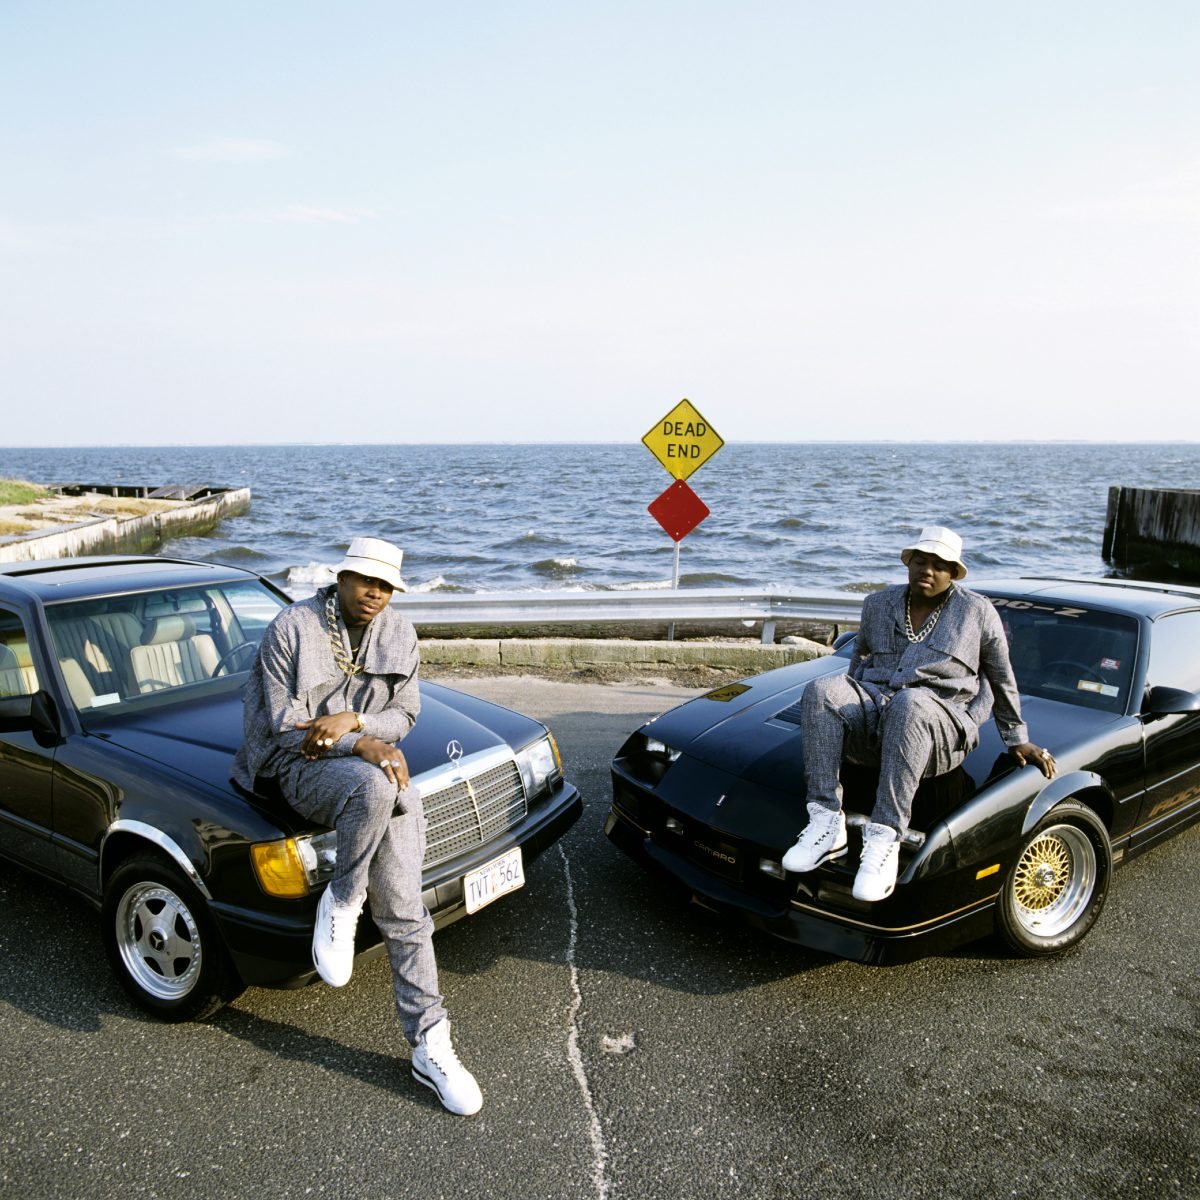 EPMD photographed in Babylon, Long Island in 1989. © Janette Beckman / Retna Ltd.